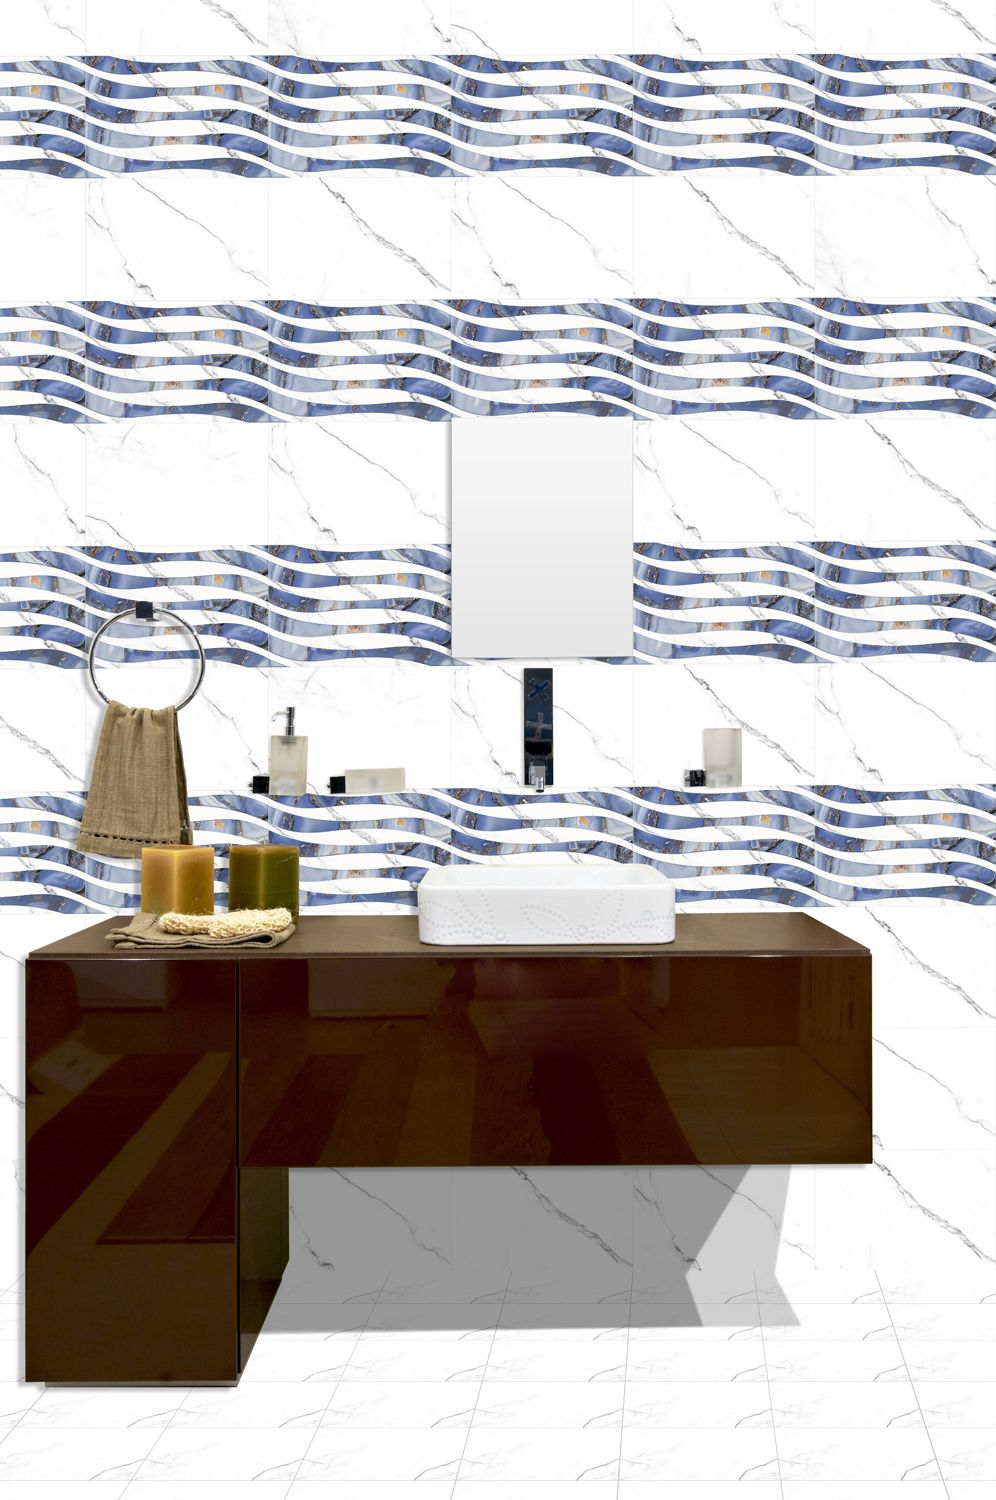 Odh Statuario Wave Hl Orient Bell Bathroom Tiles With Highlighter Bathroom Wall Tile Durable Tiles Buy Tile